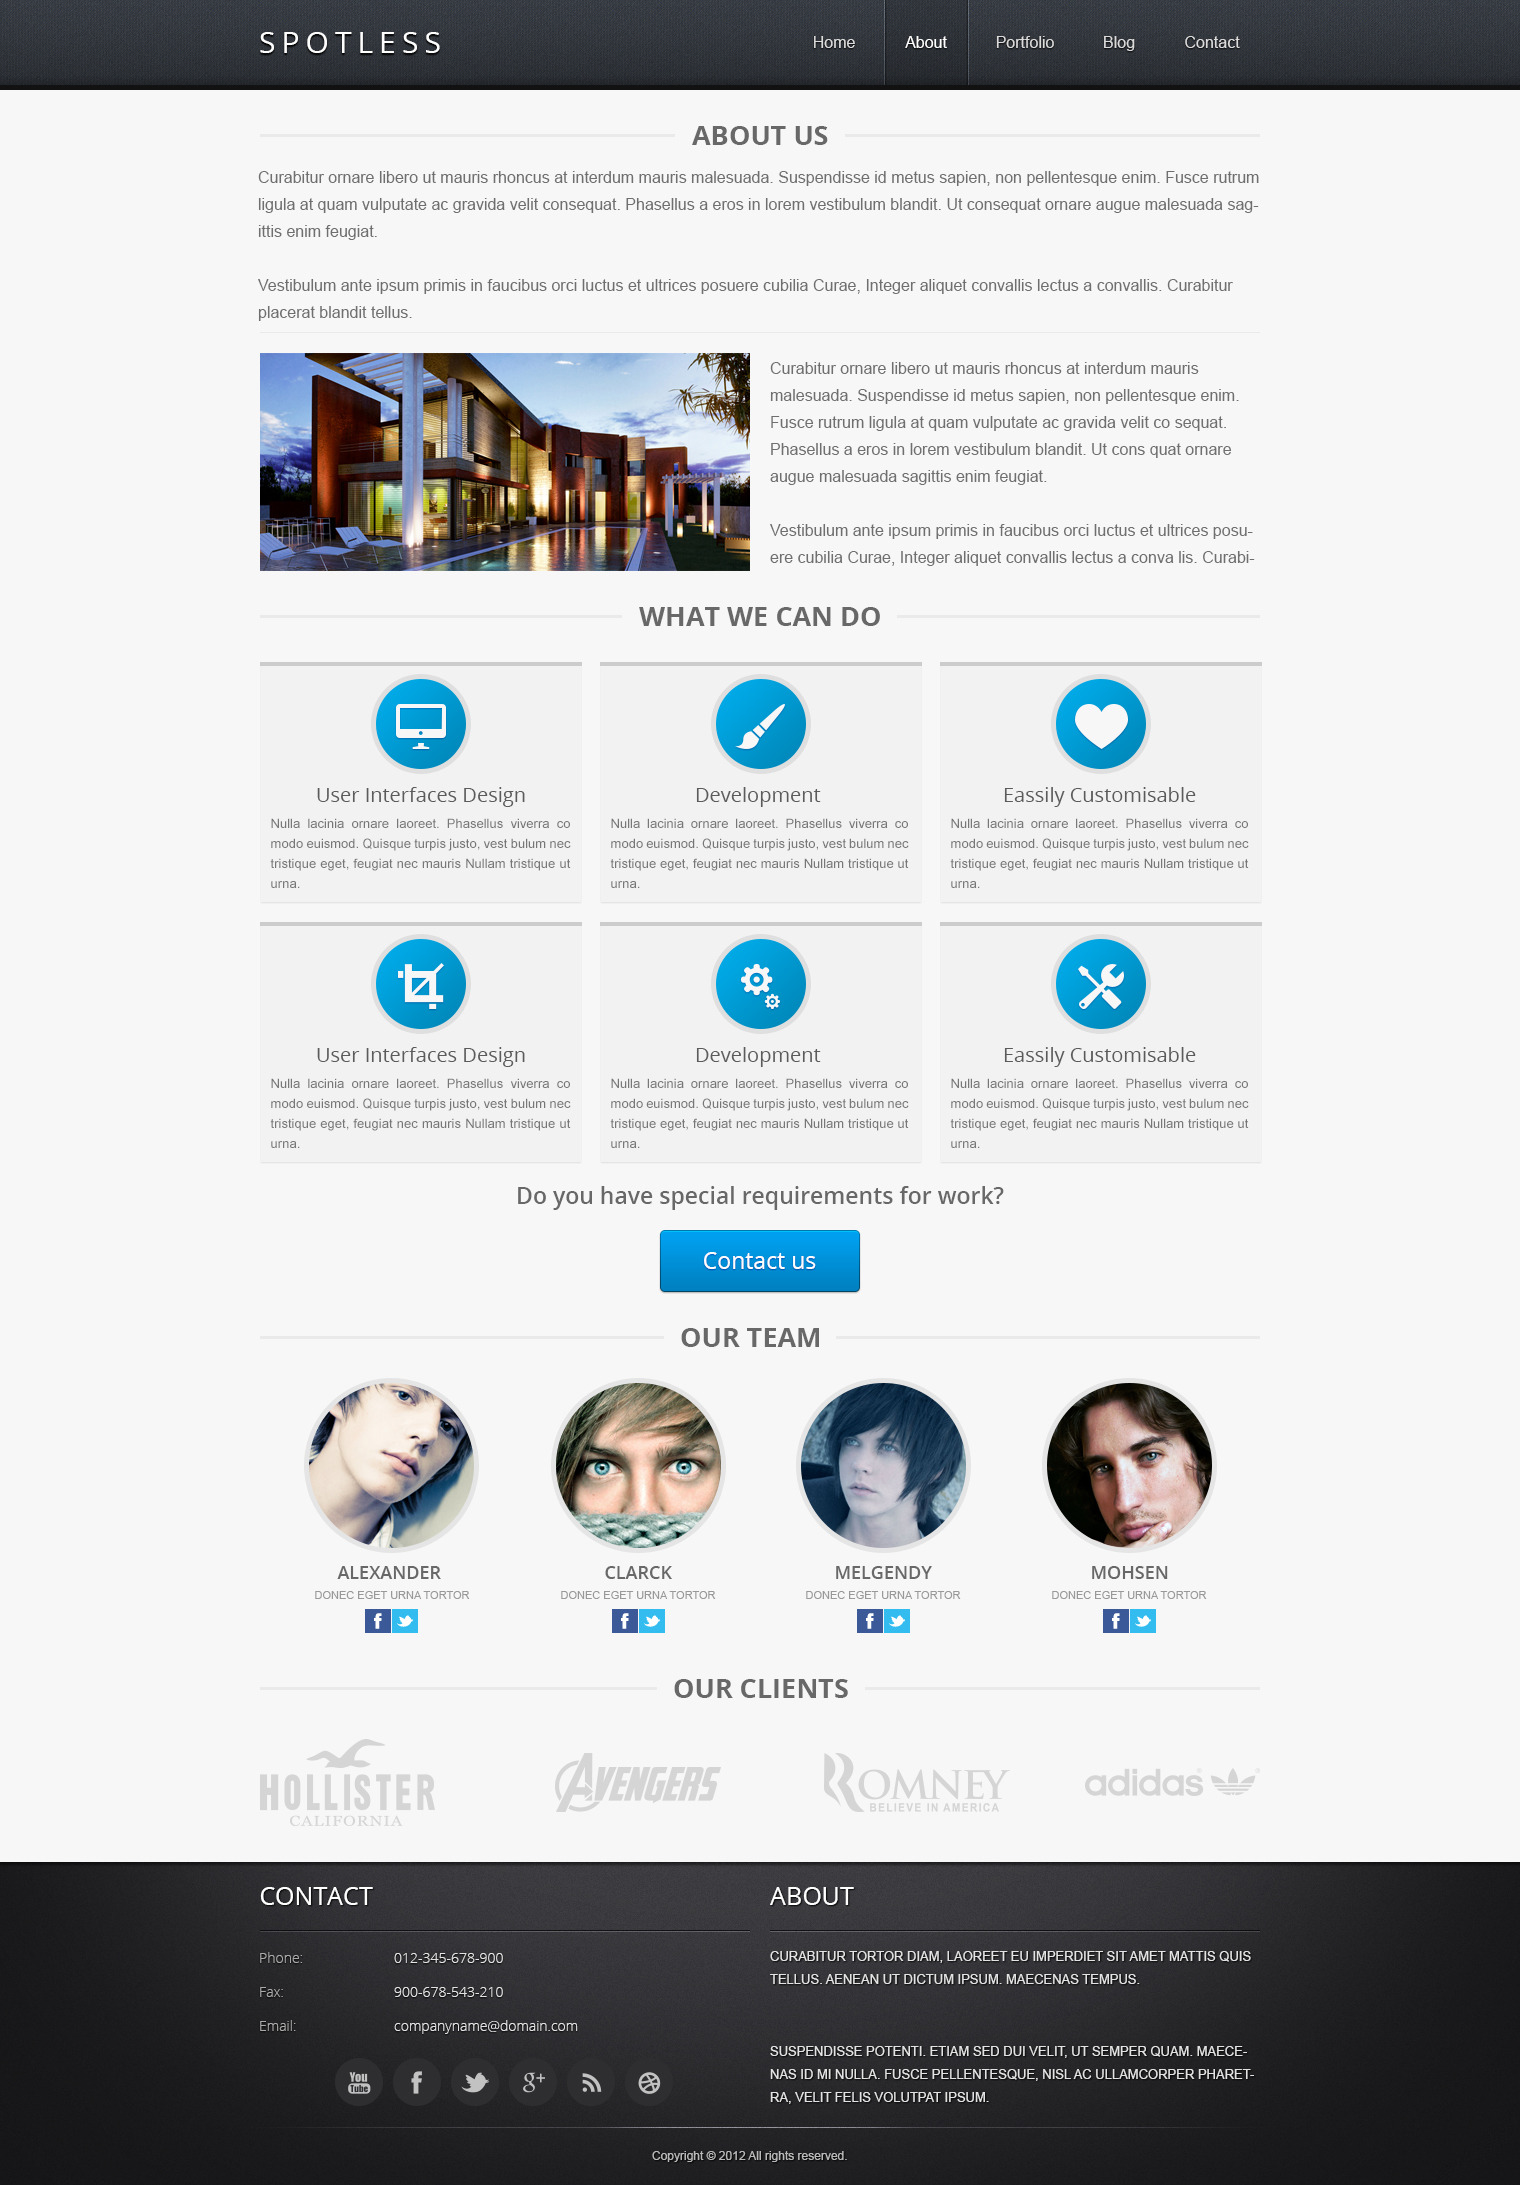 Spotless - PSD Template